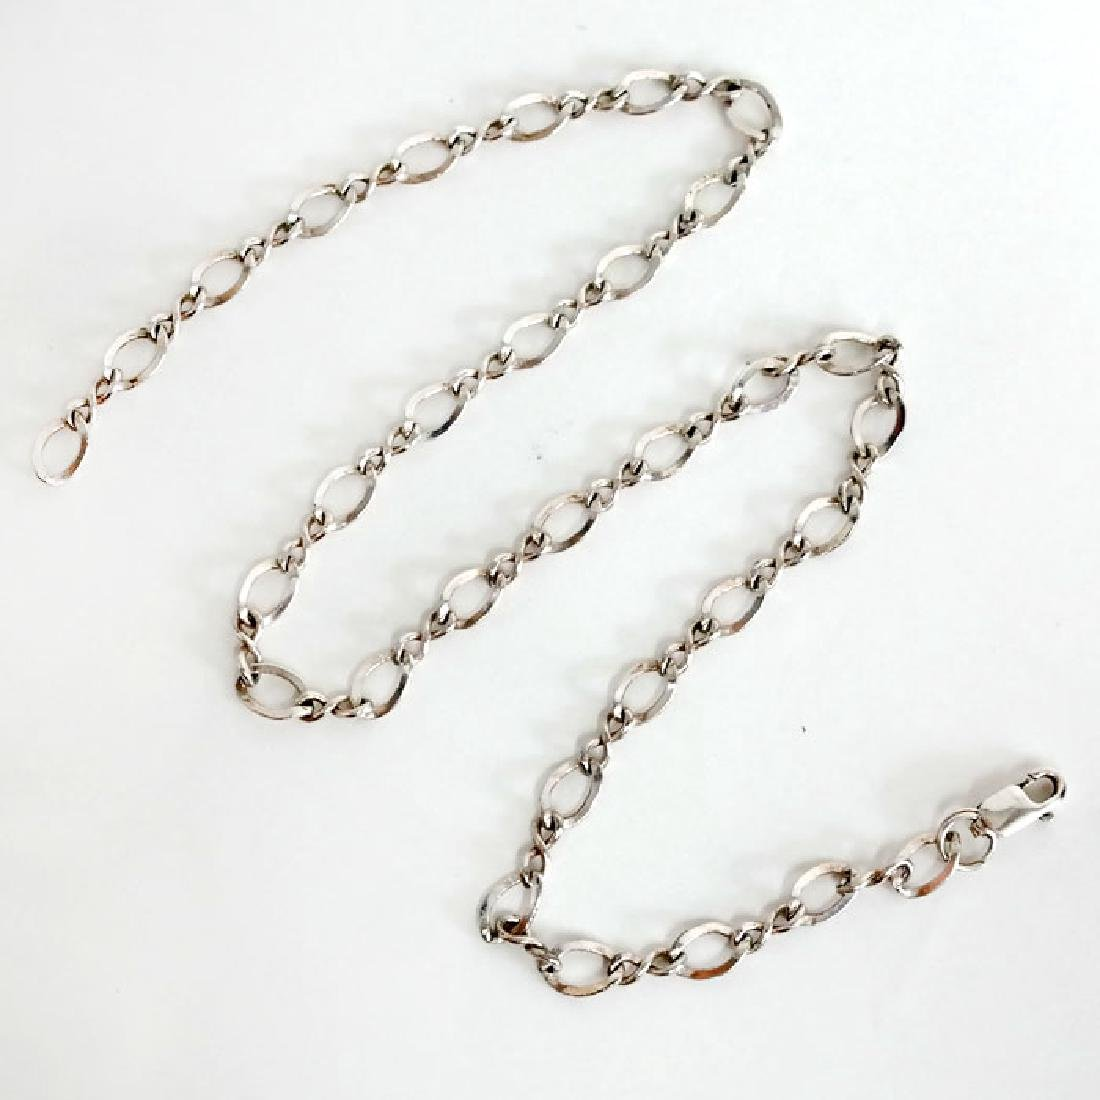 Vintage sterling silver diamond cut curved fancy links